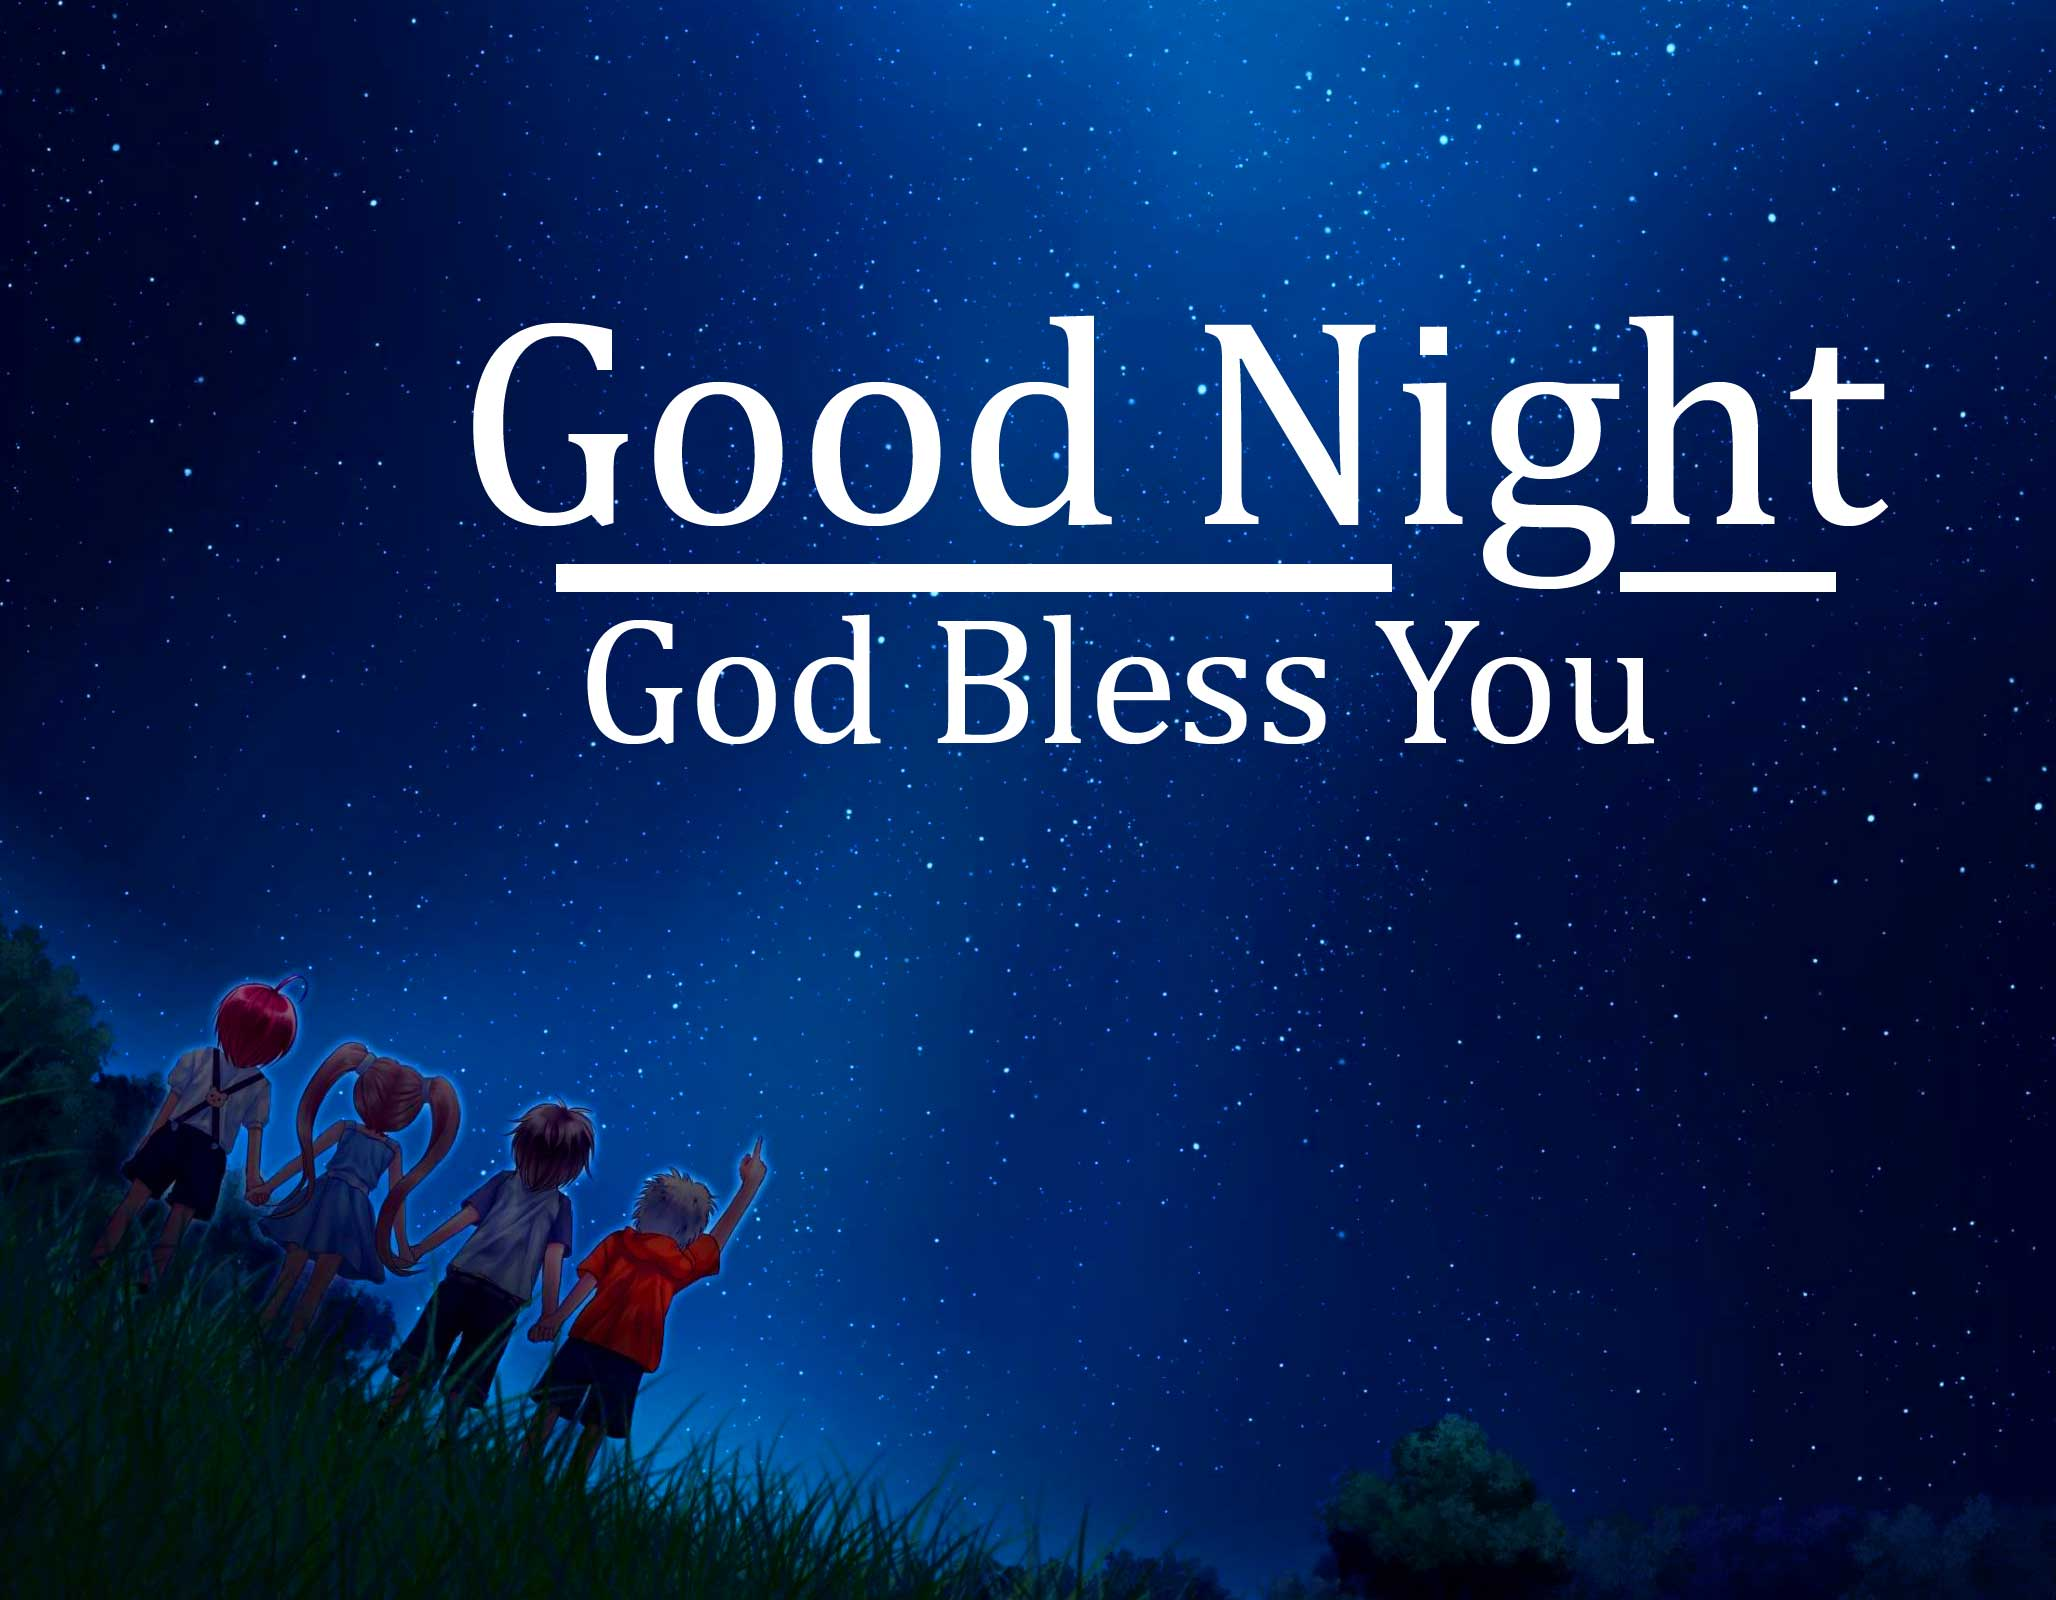 Night Sky with Animals Picture and Good Night Wishing